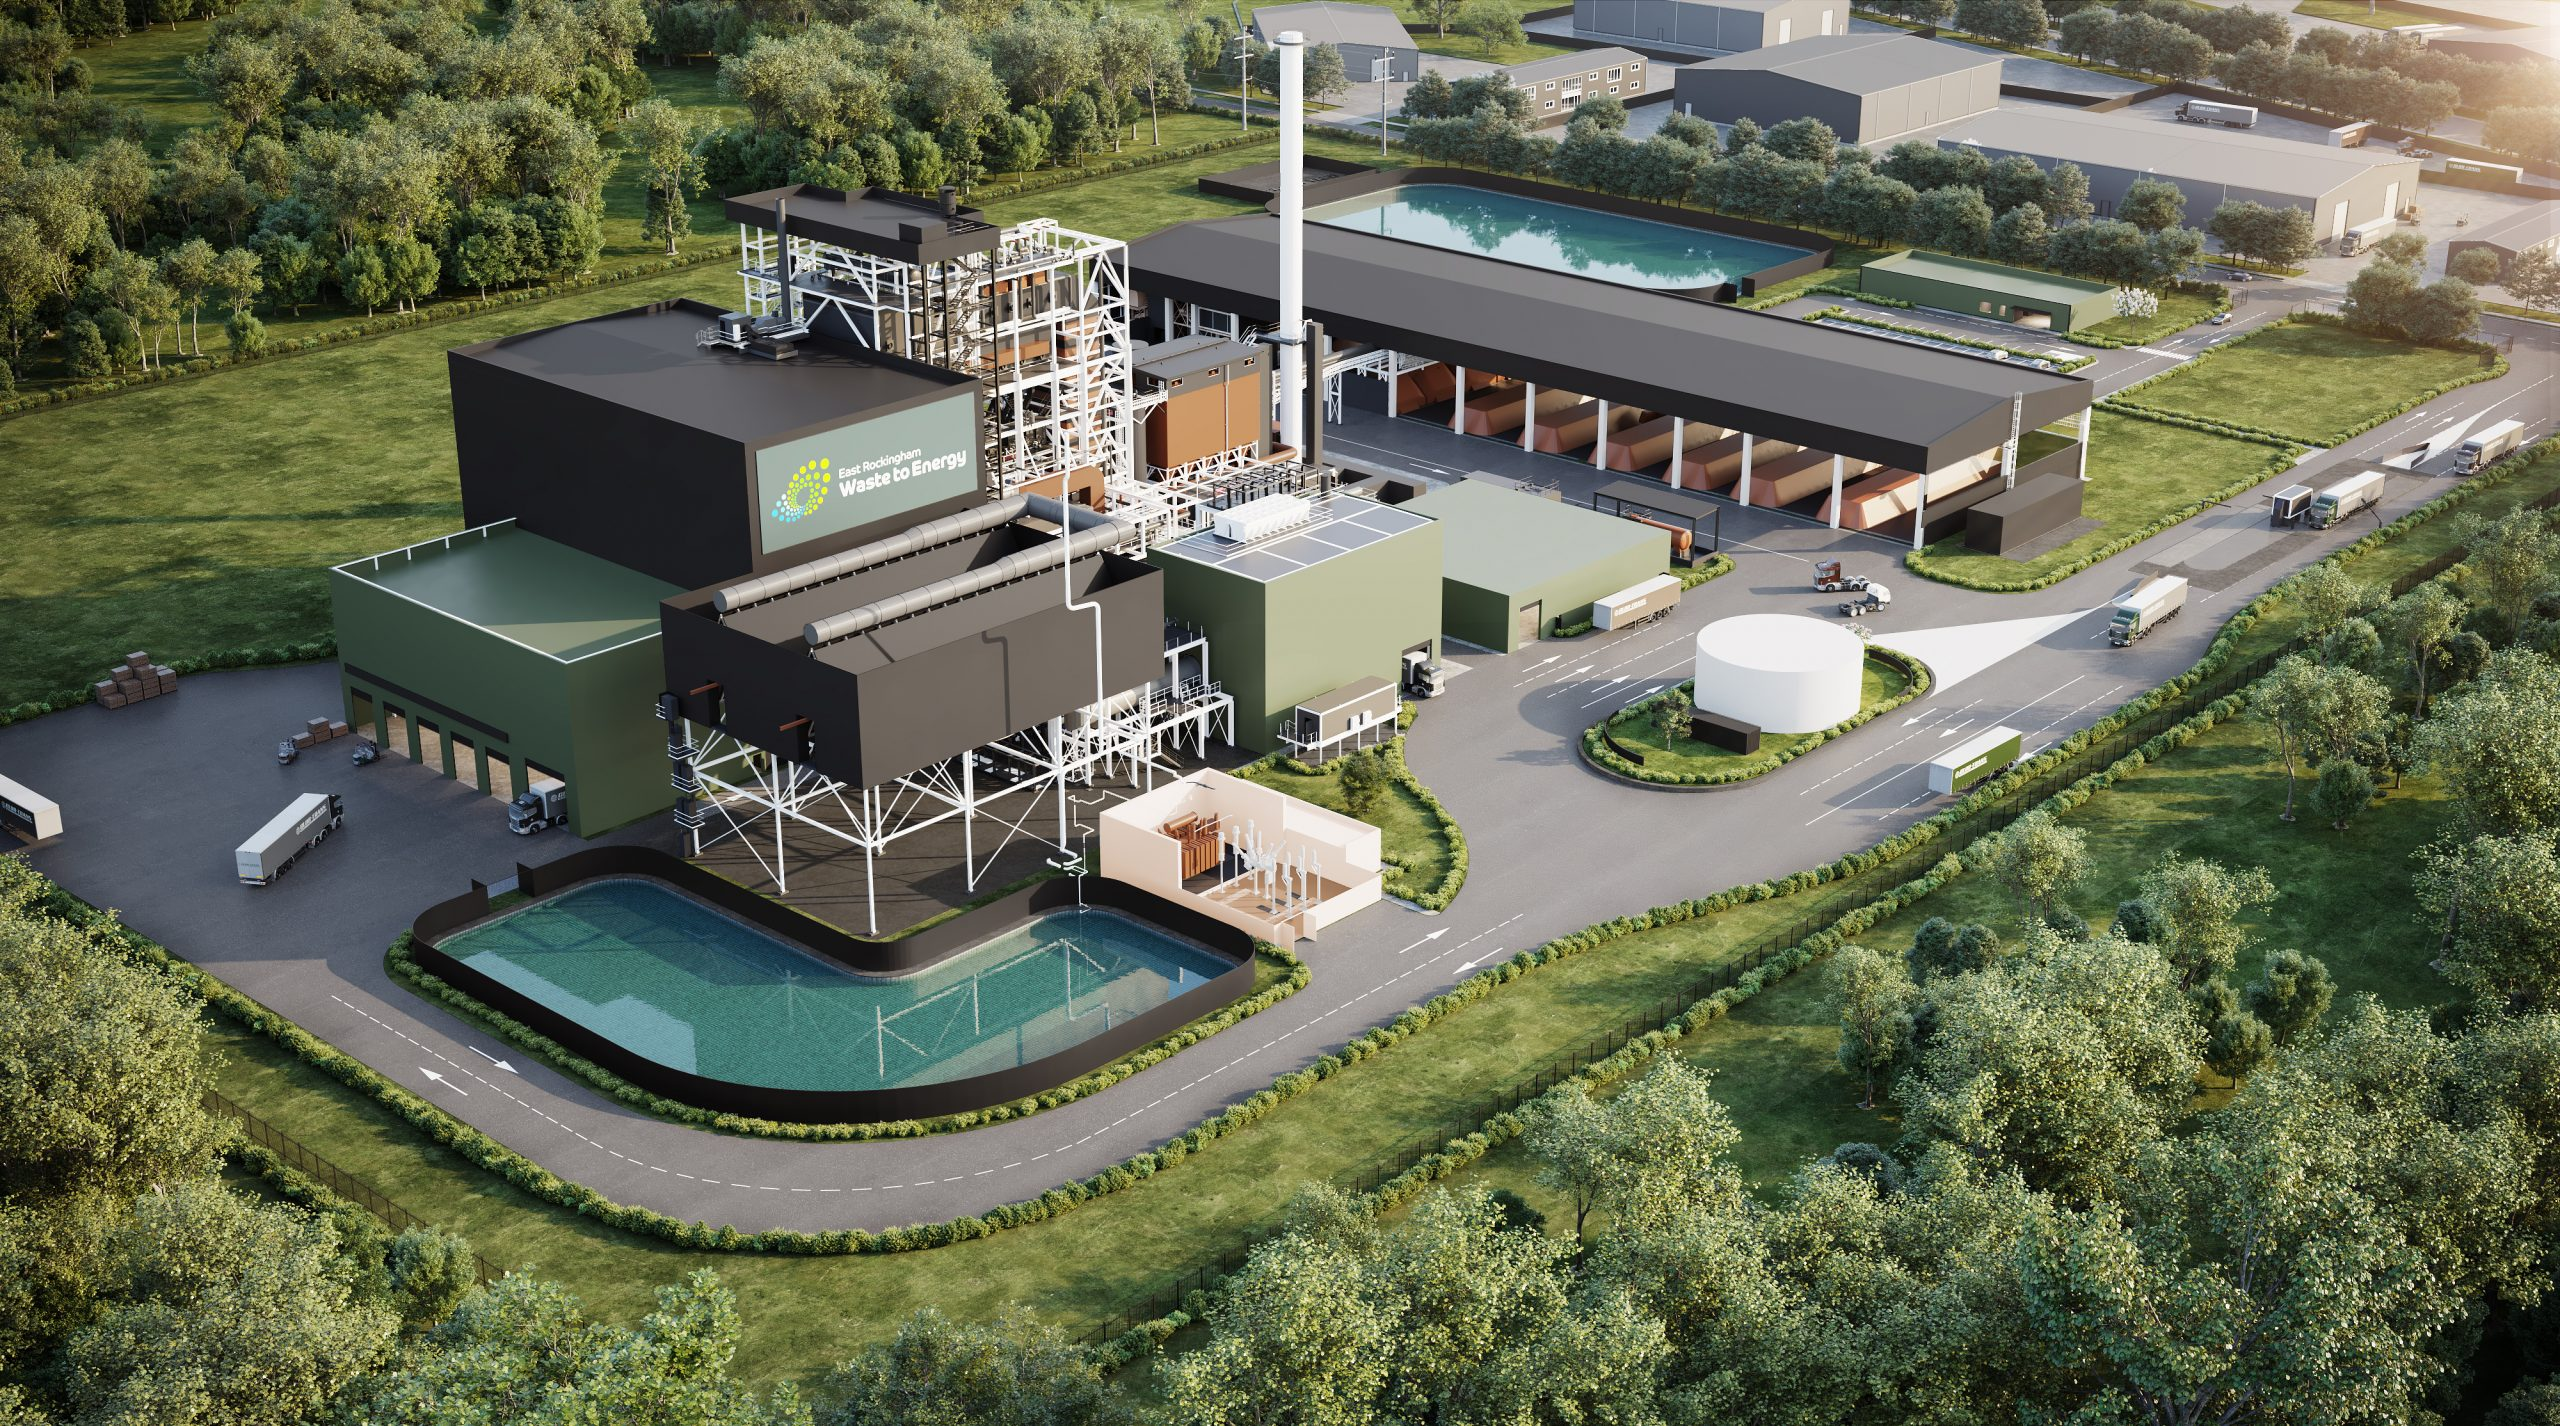 An artist rendering of the East Rockingham energy from waste facility in Western Australia. This facility is under construction and is a similiar, if not identical, design to the Jerrara Power proposal.